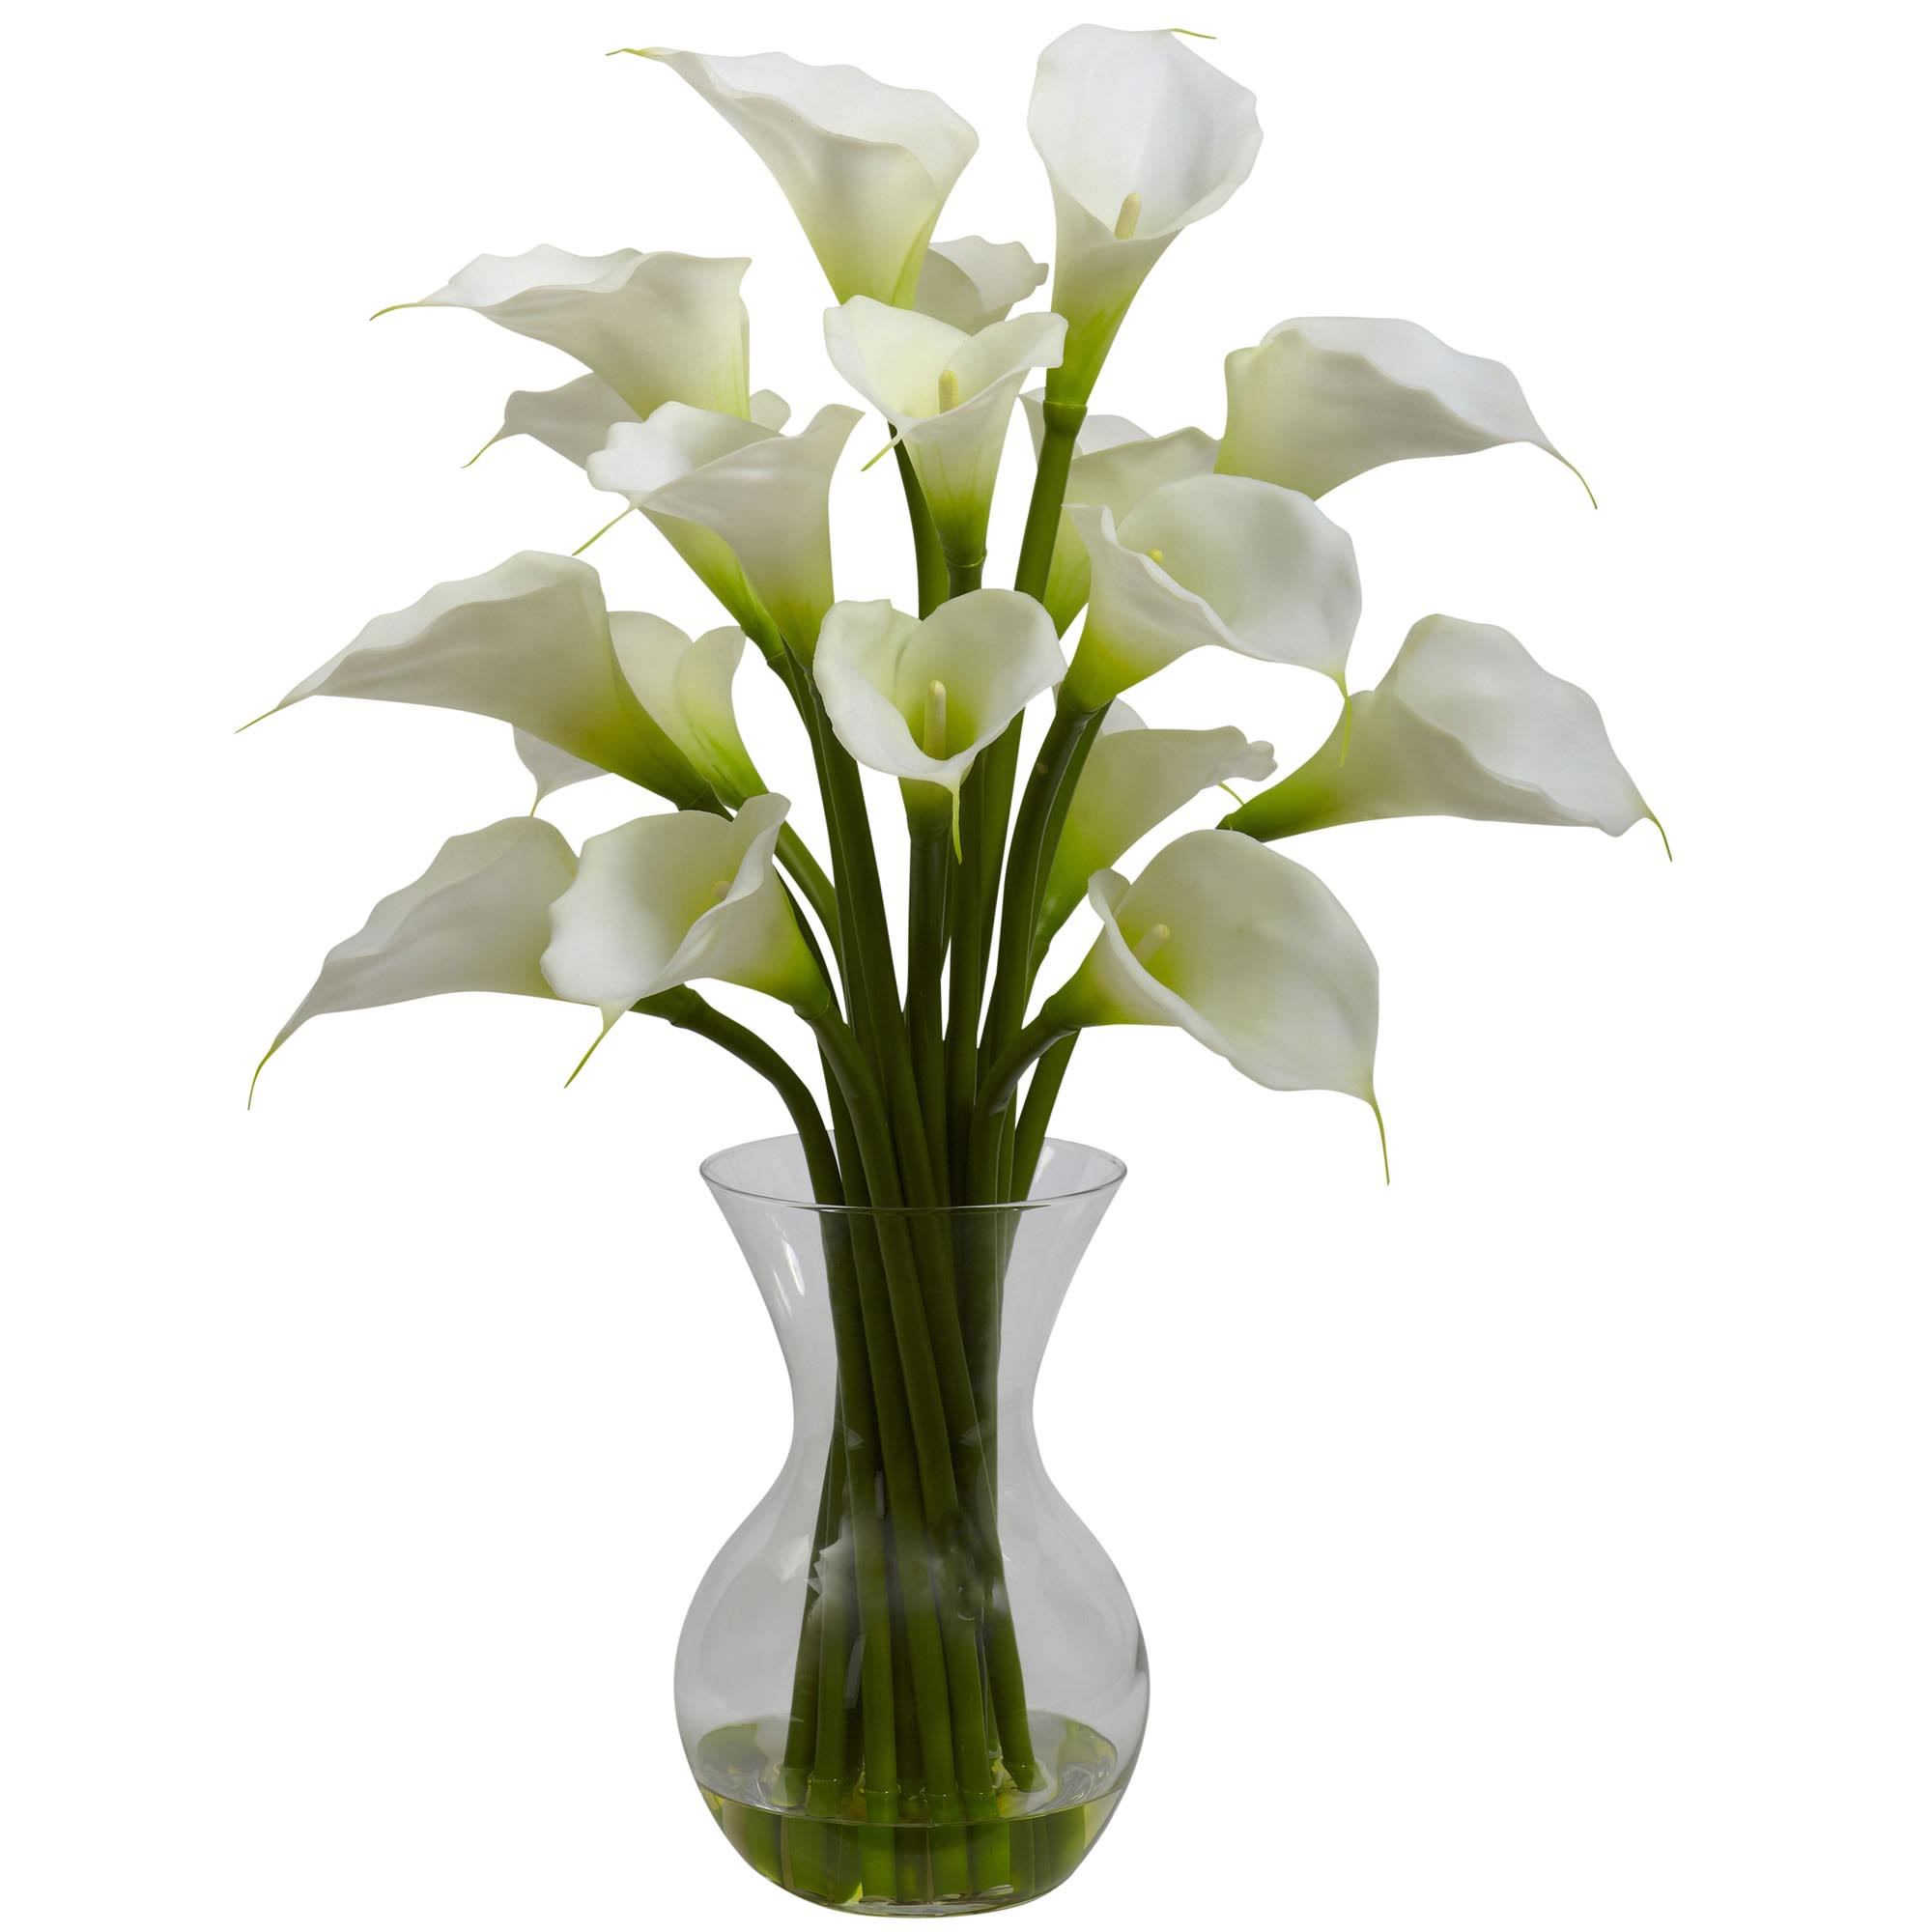 Lily Vase Wedding Flowers : Inch silk gala calla lily arrangement in vase multiple